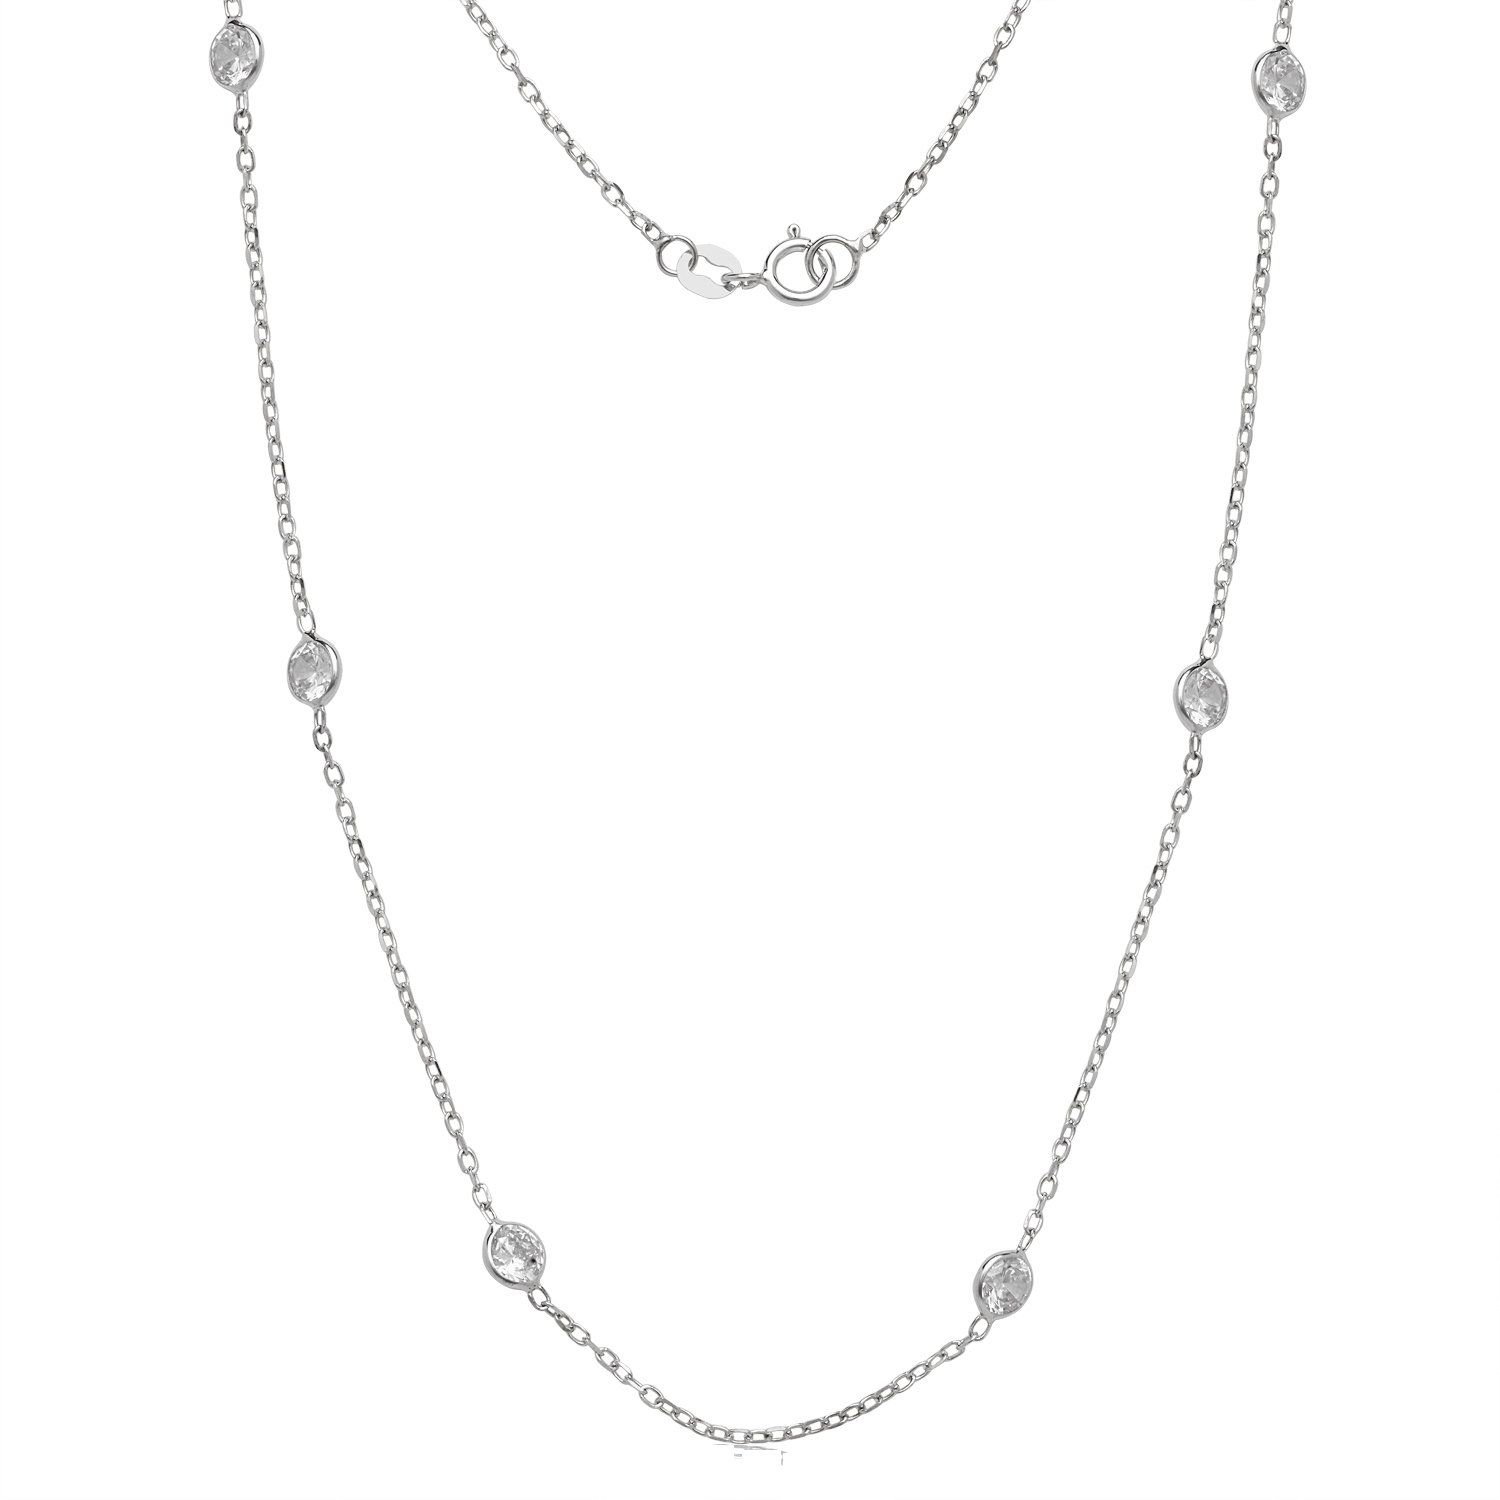 Pin On Chain Necklaces